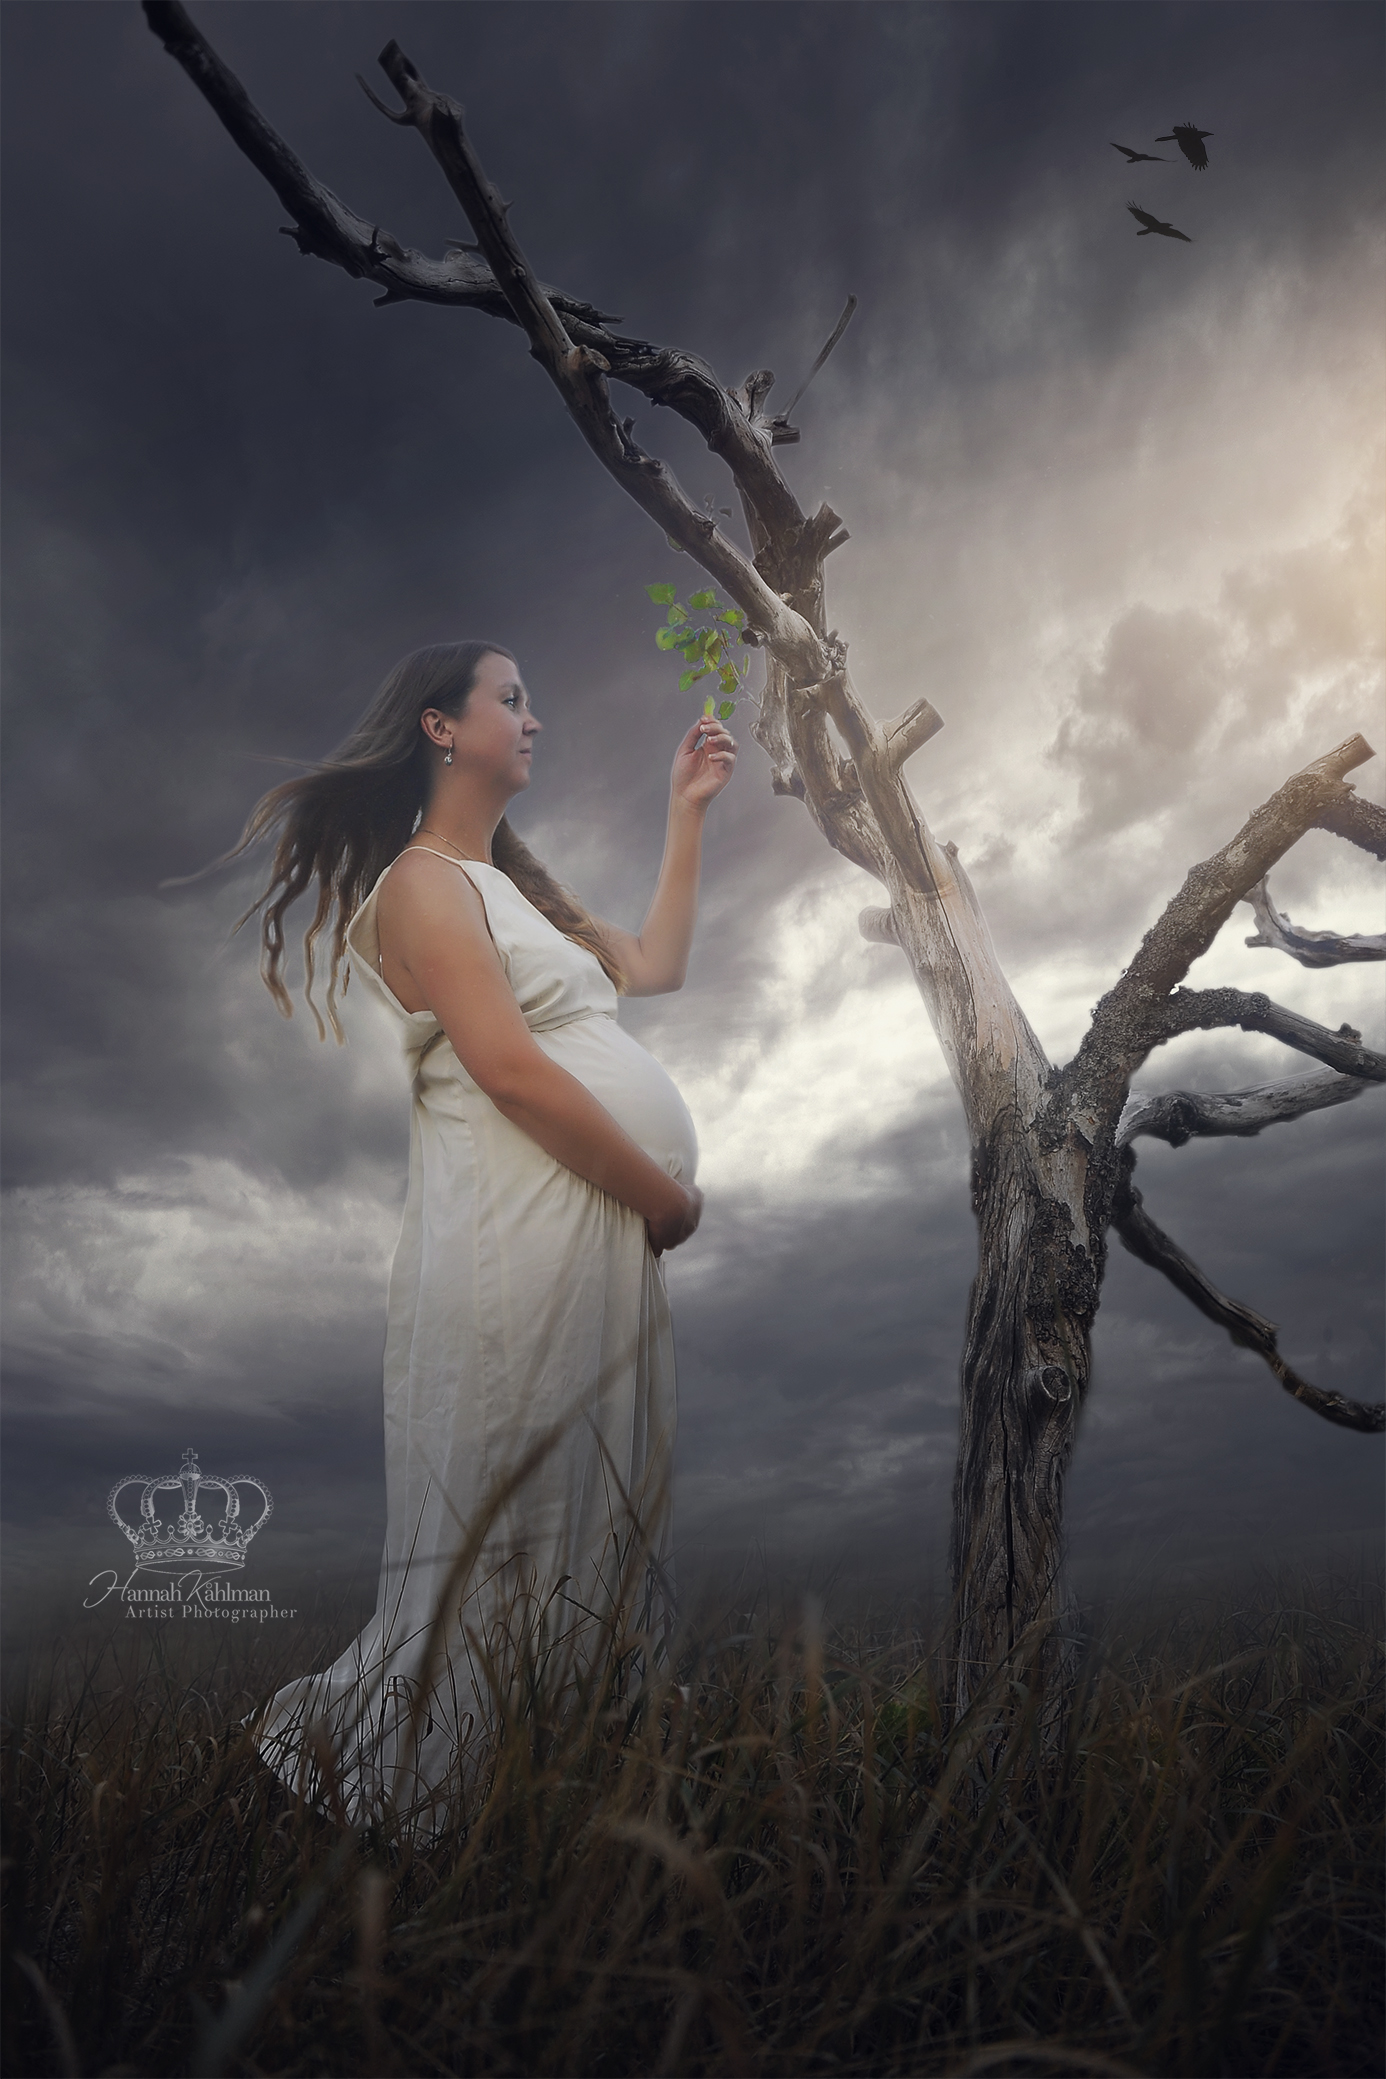 Creative_outdoor_conceptual_composite_ma